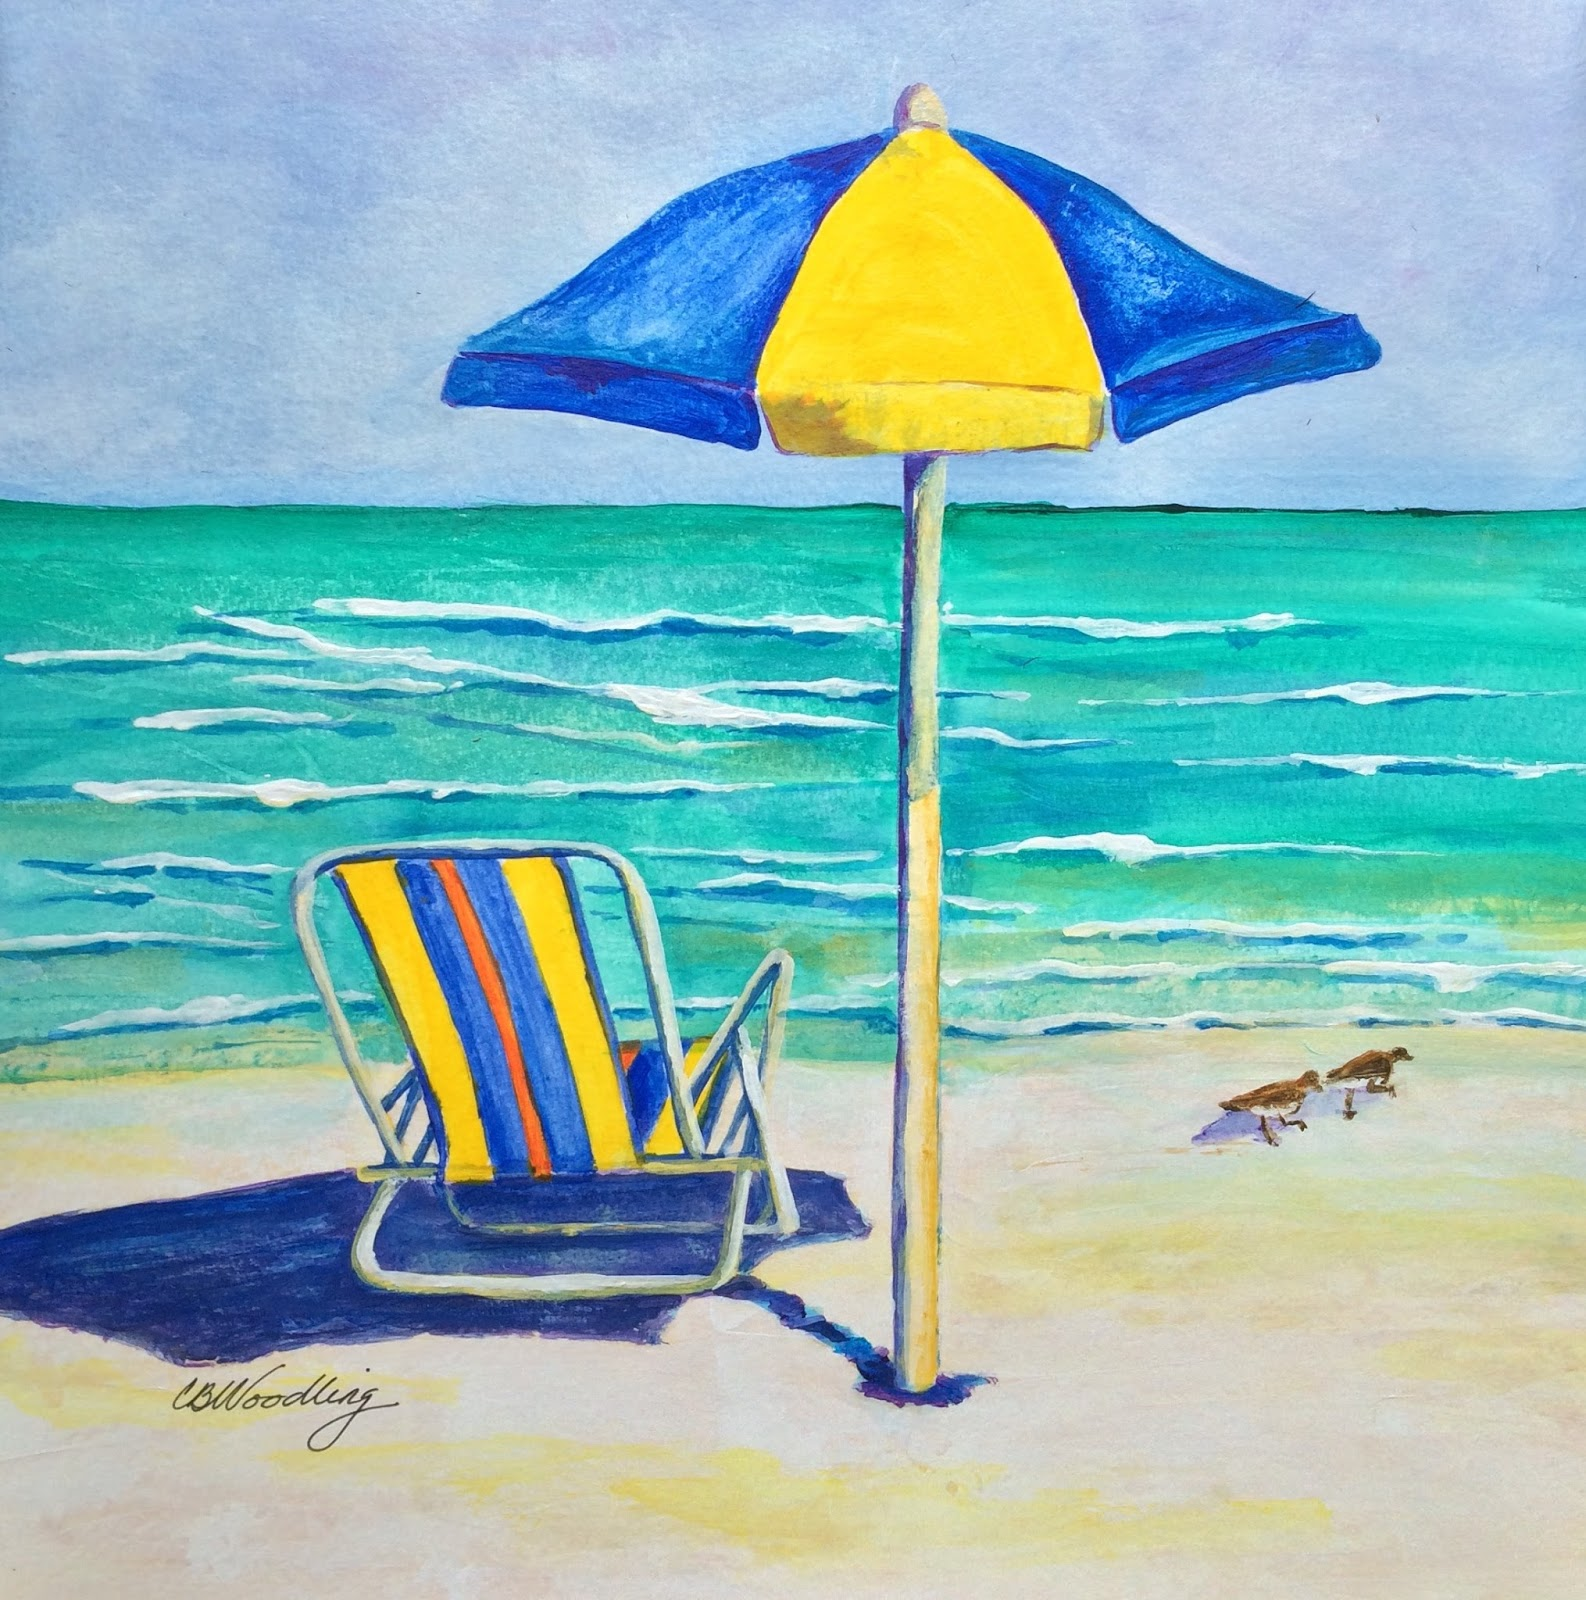 Beach chairs on the beach painting - Beach Chair In Yellow And Blue By Cb Woodling